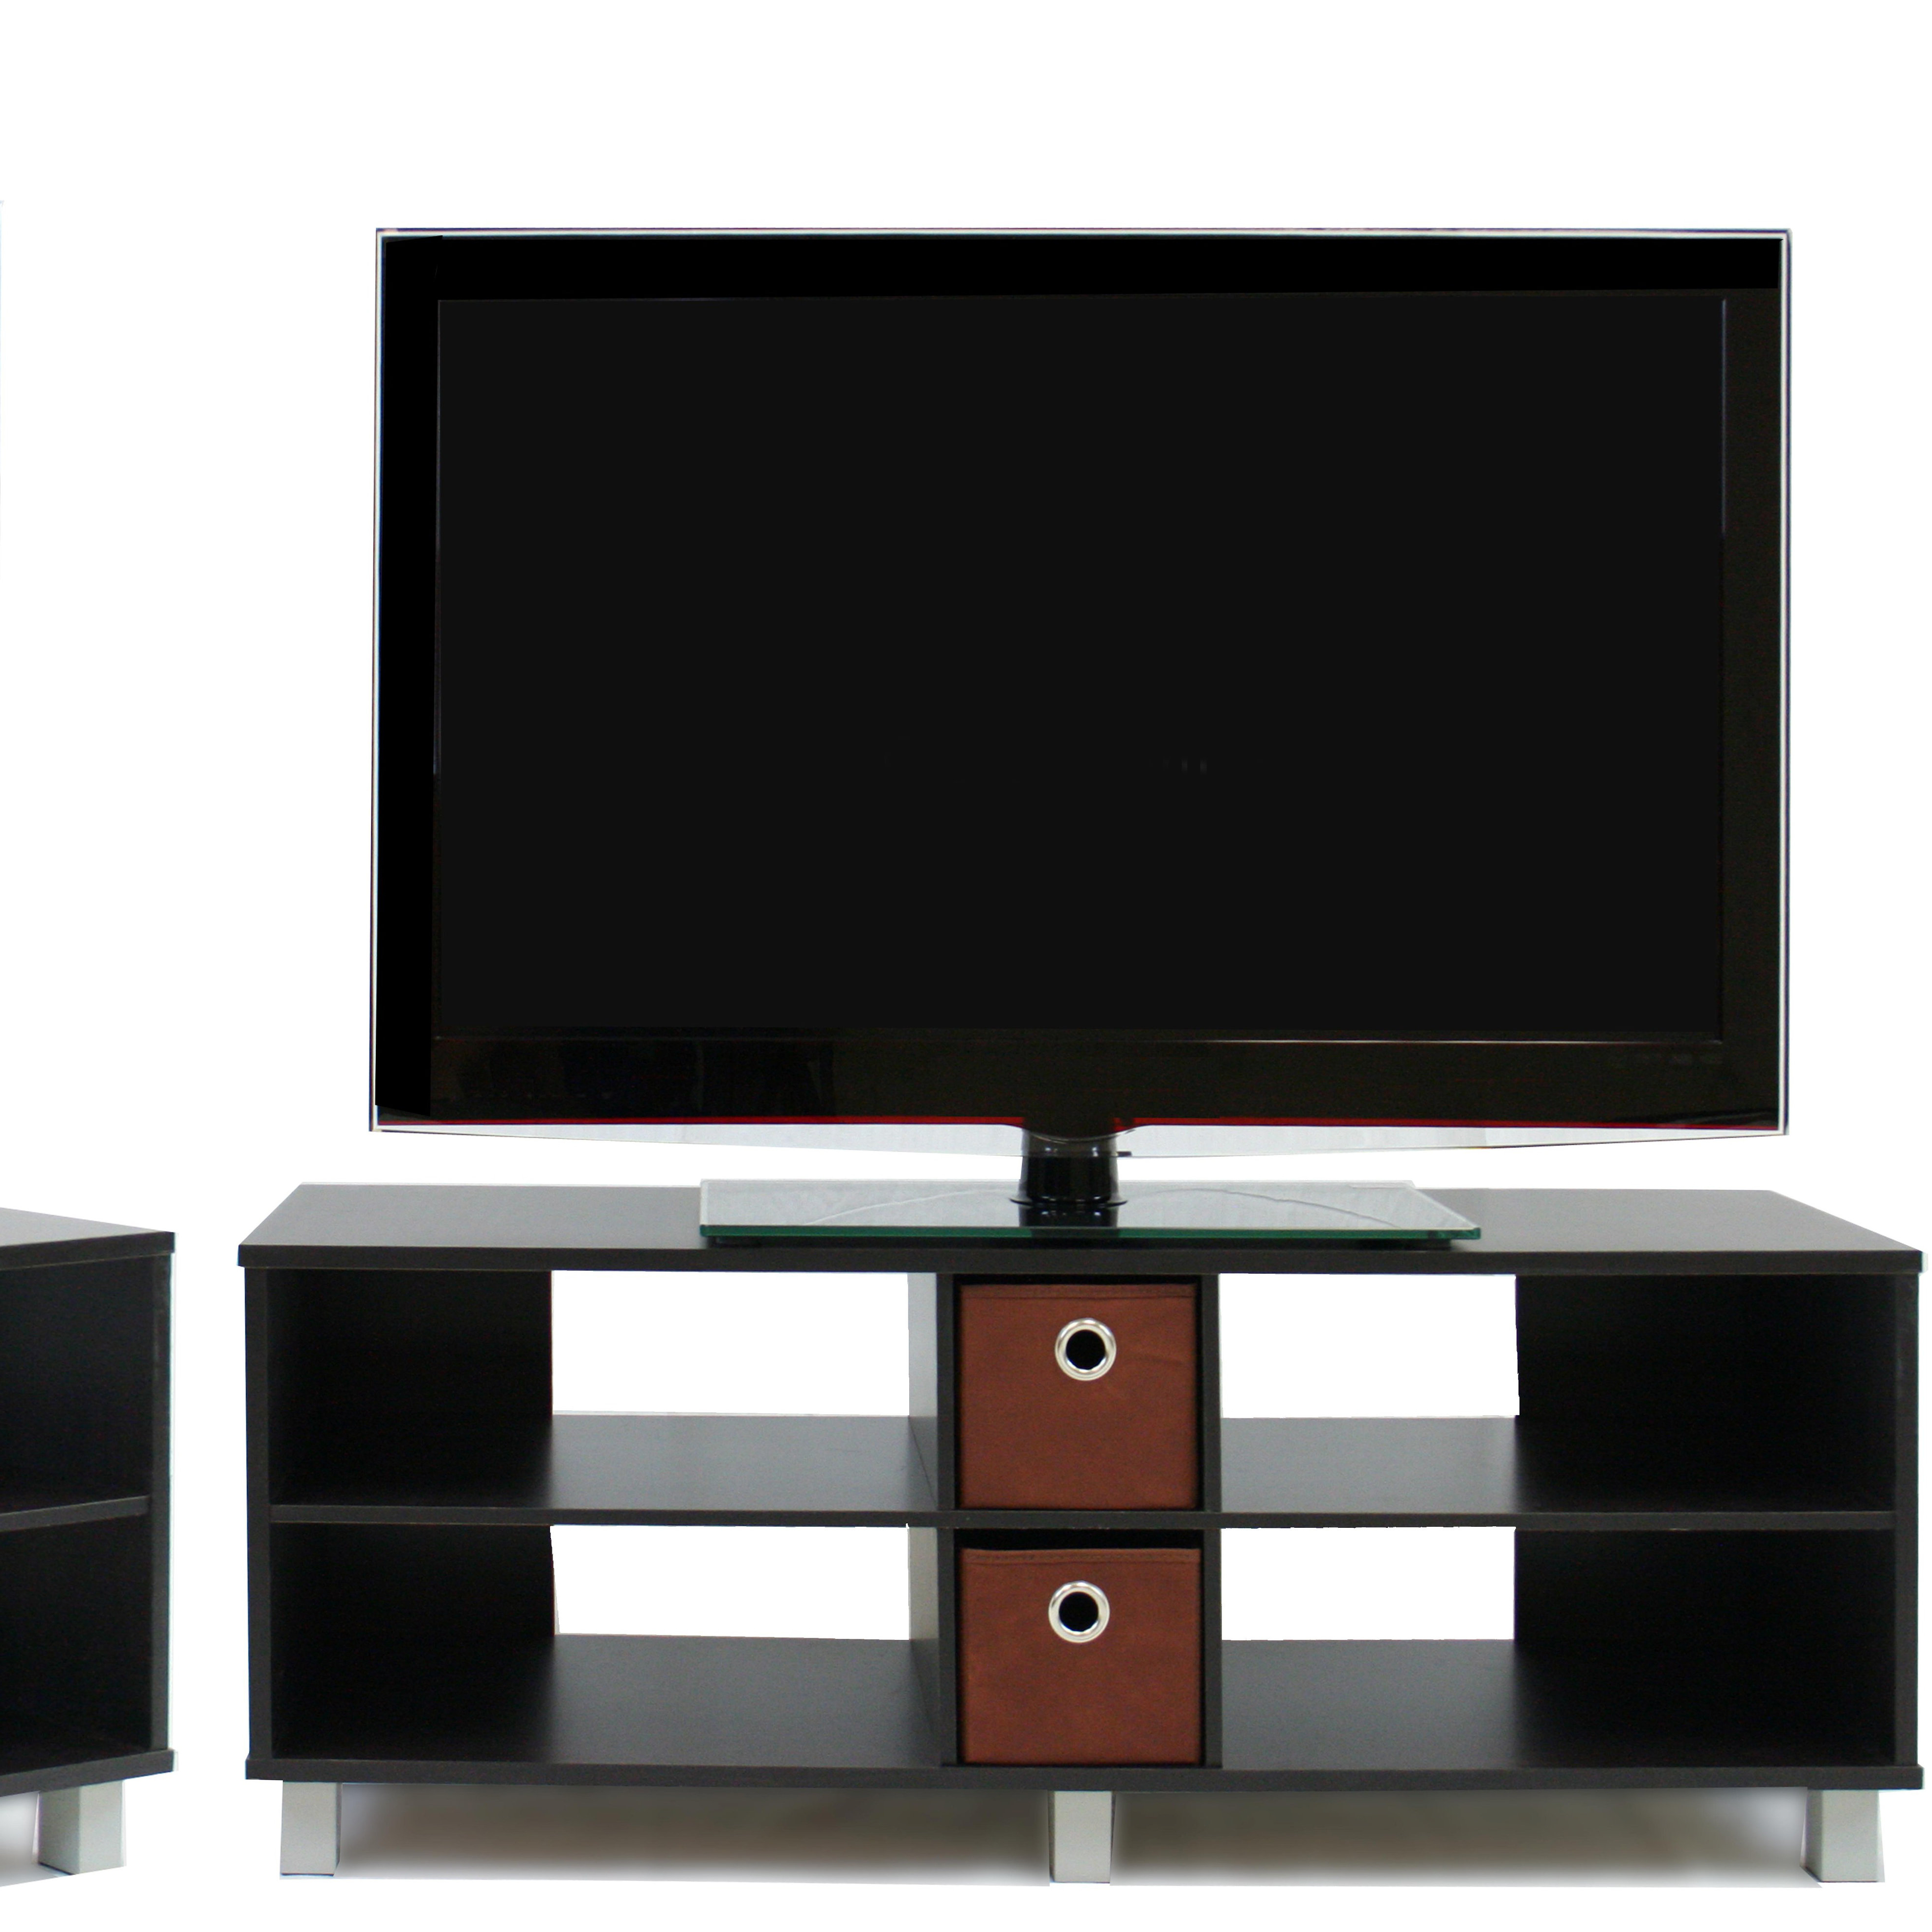 Beech Tv Stands With Well Known 80cm Tv Stand (View 12 of 20)